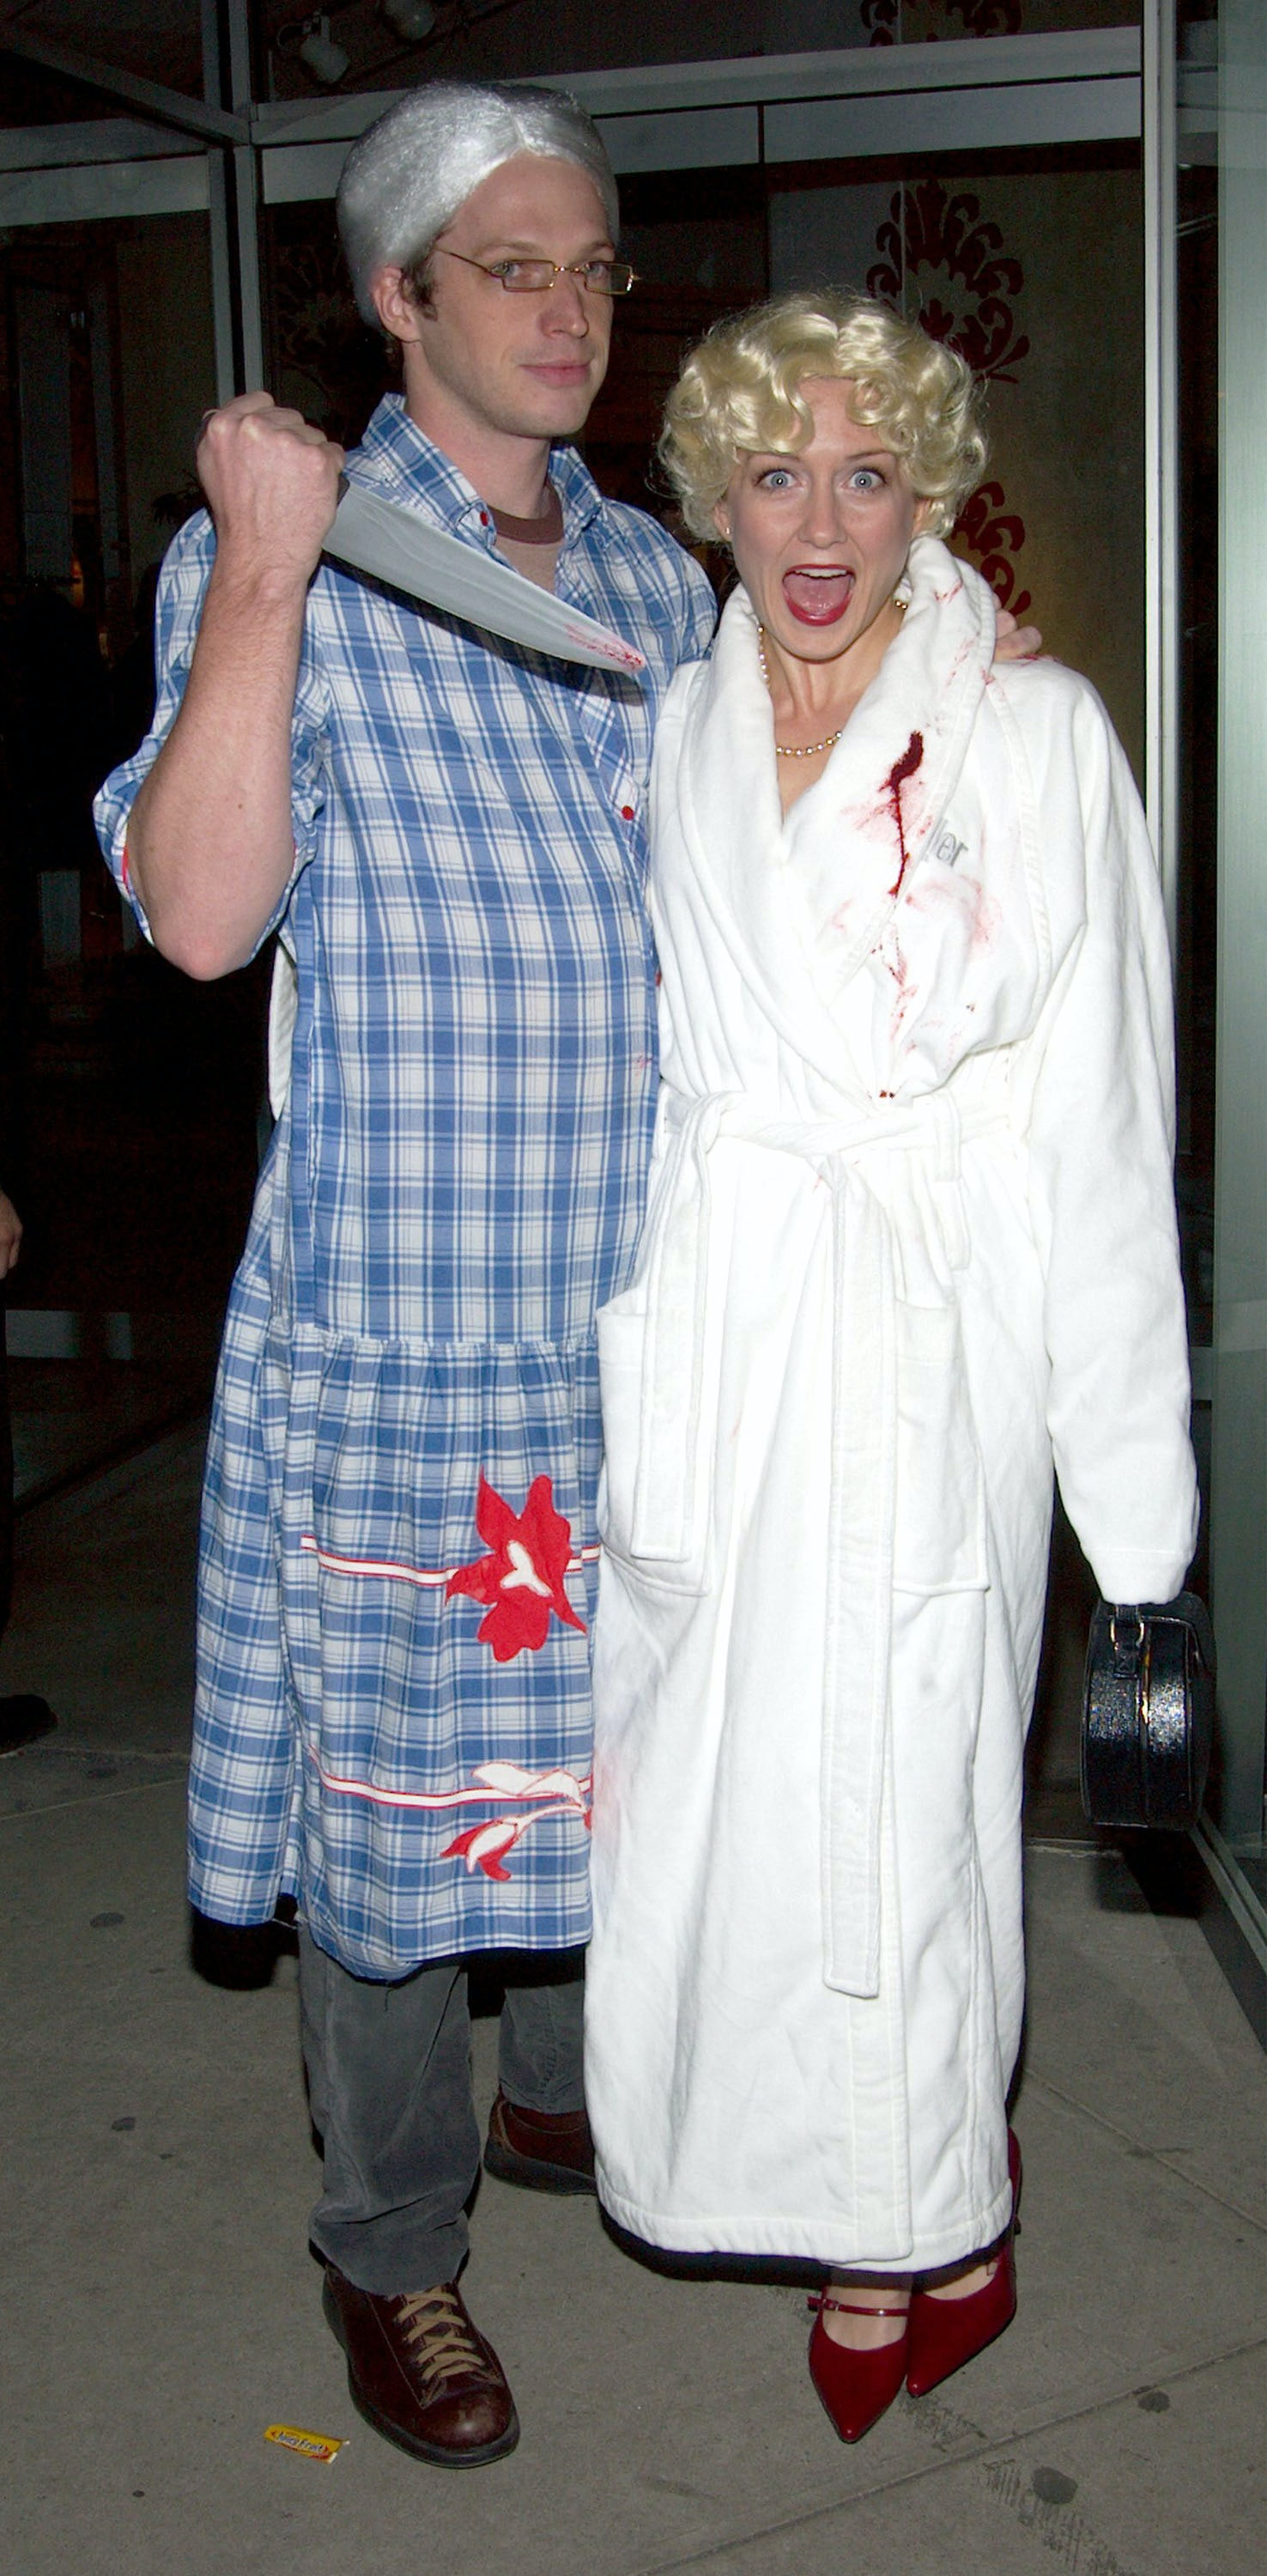 20 Funny Couples Halloween Costumes That Are Way Better Than Elsa ...